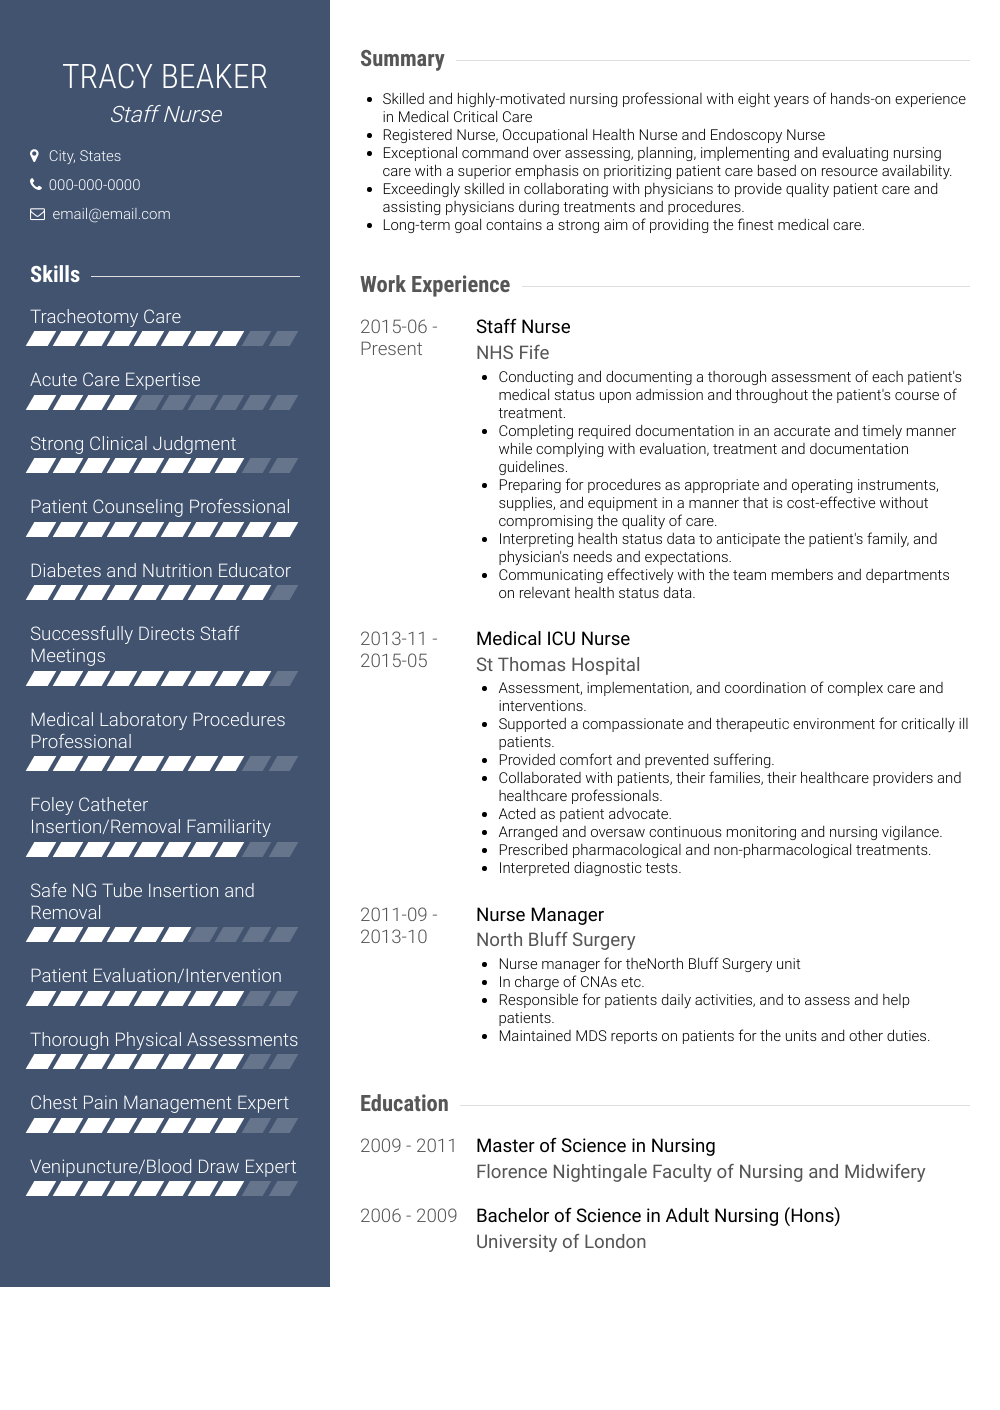 Staff Nurse Resume Samples And Templates Visualcv